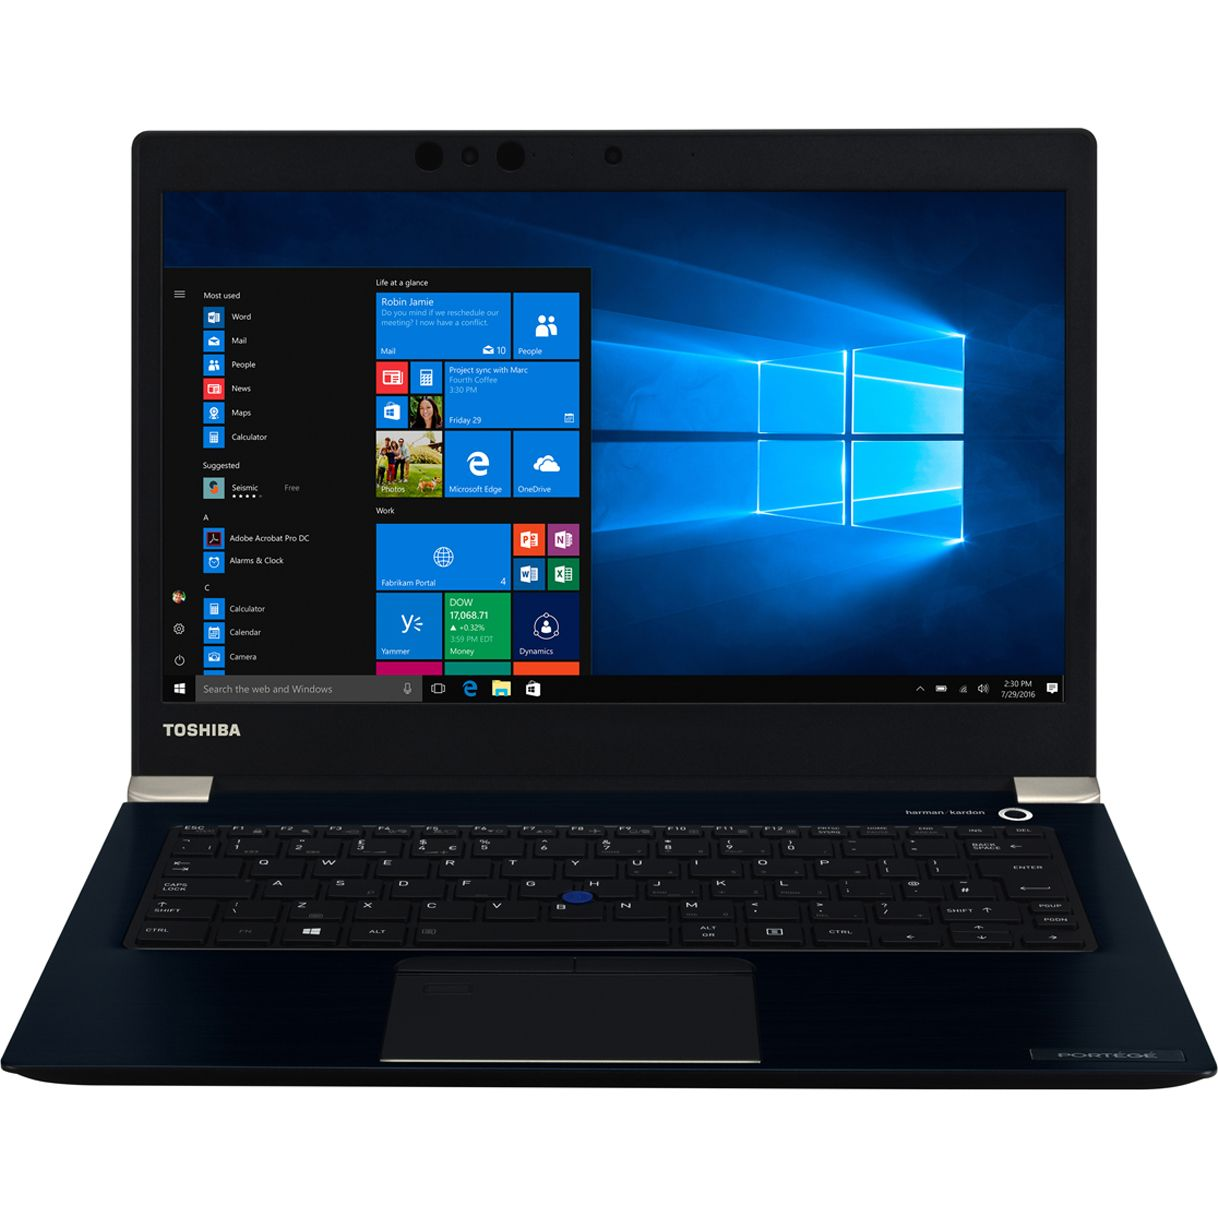 Ultrabook Toshiba Portege X30-E-11F 13.3 Full HD Touch Intel Core i7-8550U RAM 8GB SSD 512GB Windows 10 Pro